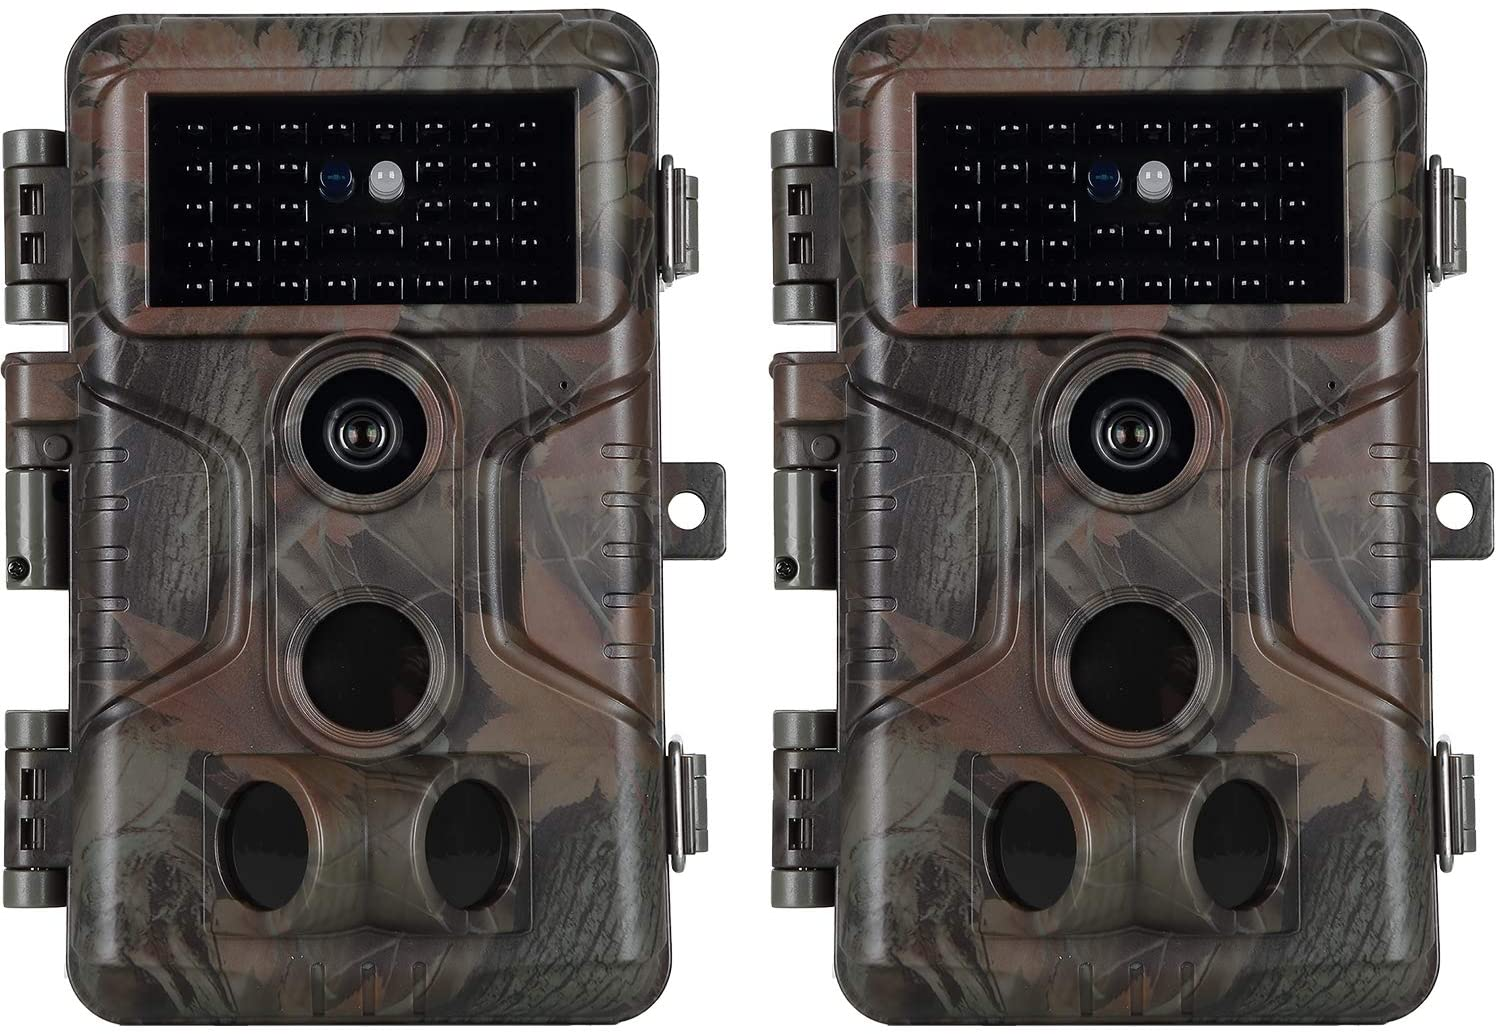 2-Pack No Glow Game & Deer Trail Cameras 20MP 1080P H.264 Video 100ft Night Vision Motion Activated 0.1S Trigger Speed Waterproof Farm & Yard Cameras for Home Surveillance & Outdoor Wildlife Hunting